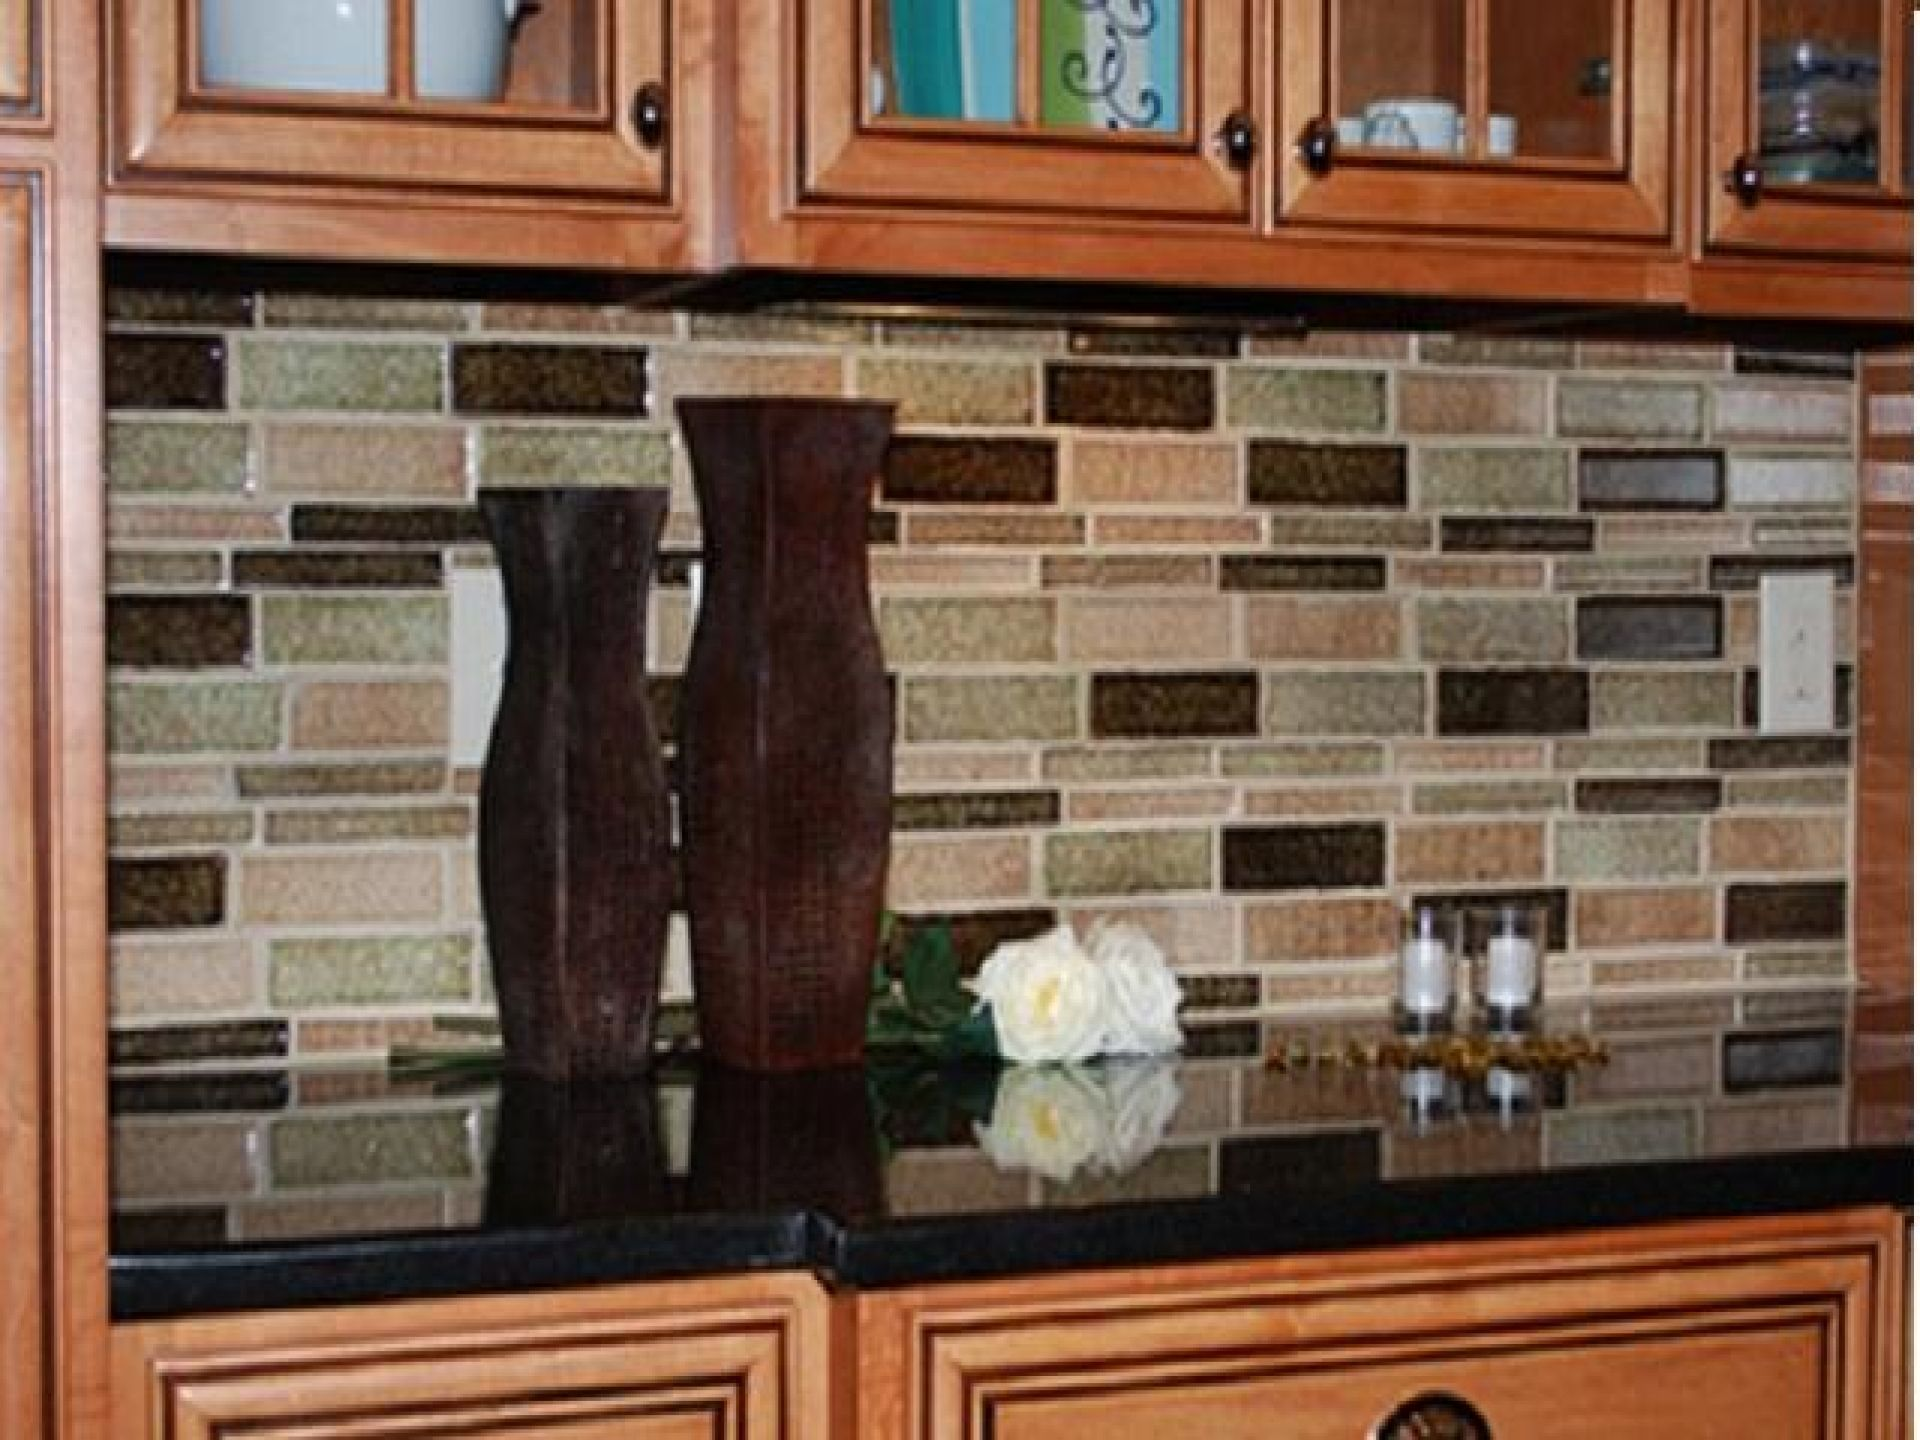 Cheap Mosaic Tile Glass Backsplash Sheets With Natural Rustic - Cheap diy rustic kitchen backsplash